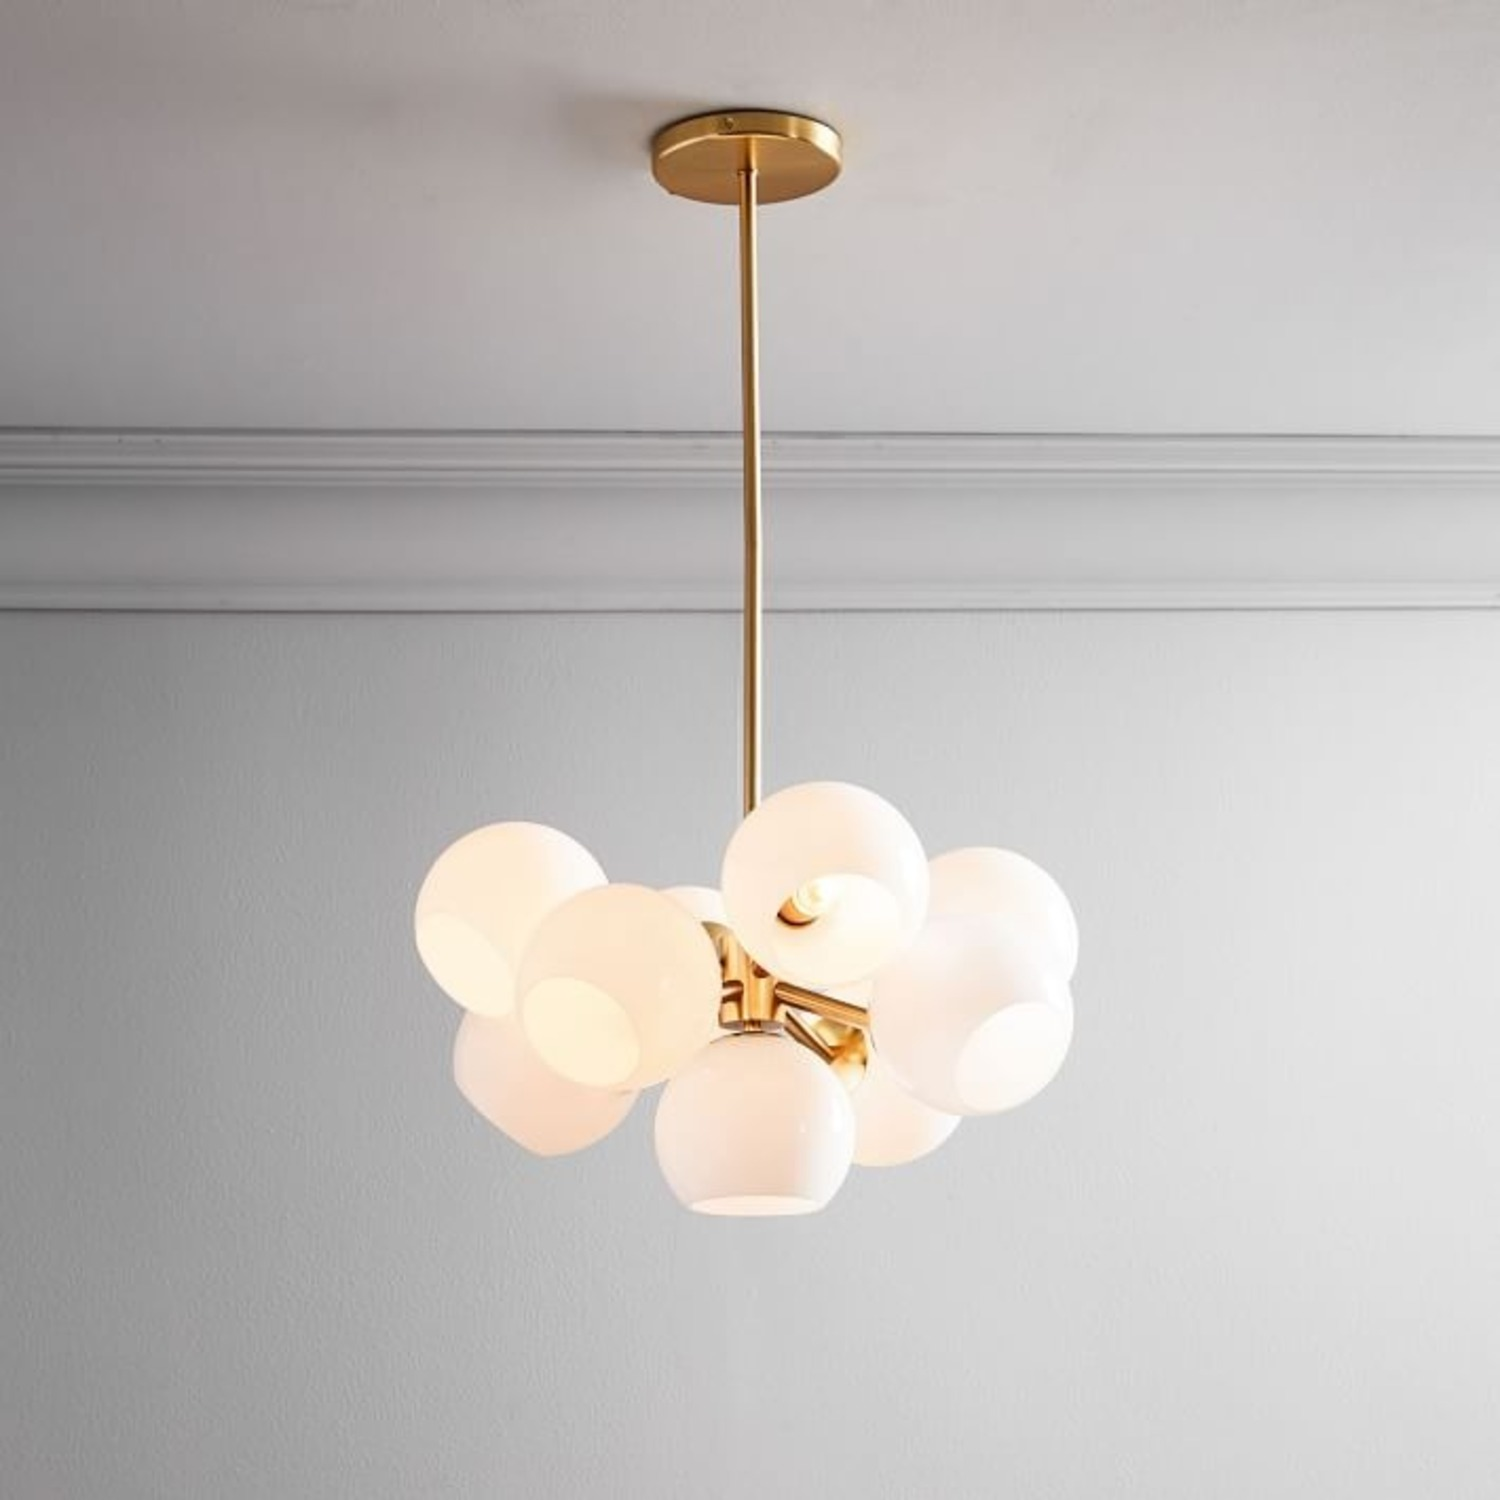 West Elm Staggered Glass Chandelier, Brass - image-1